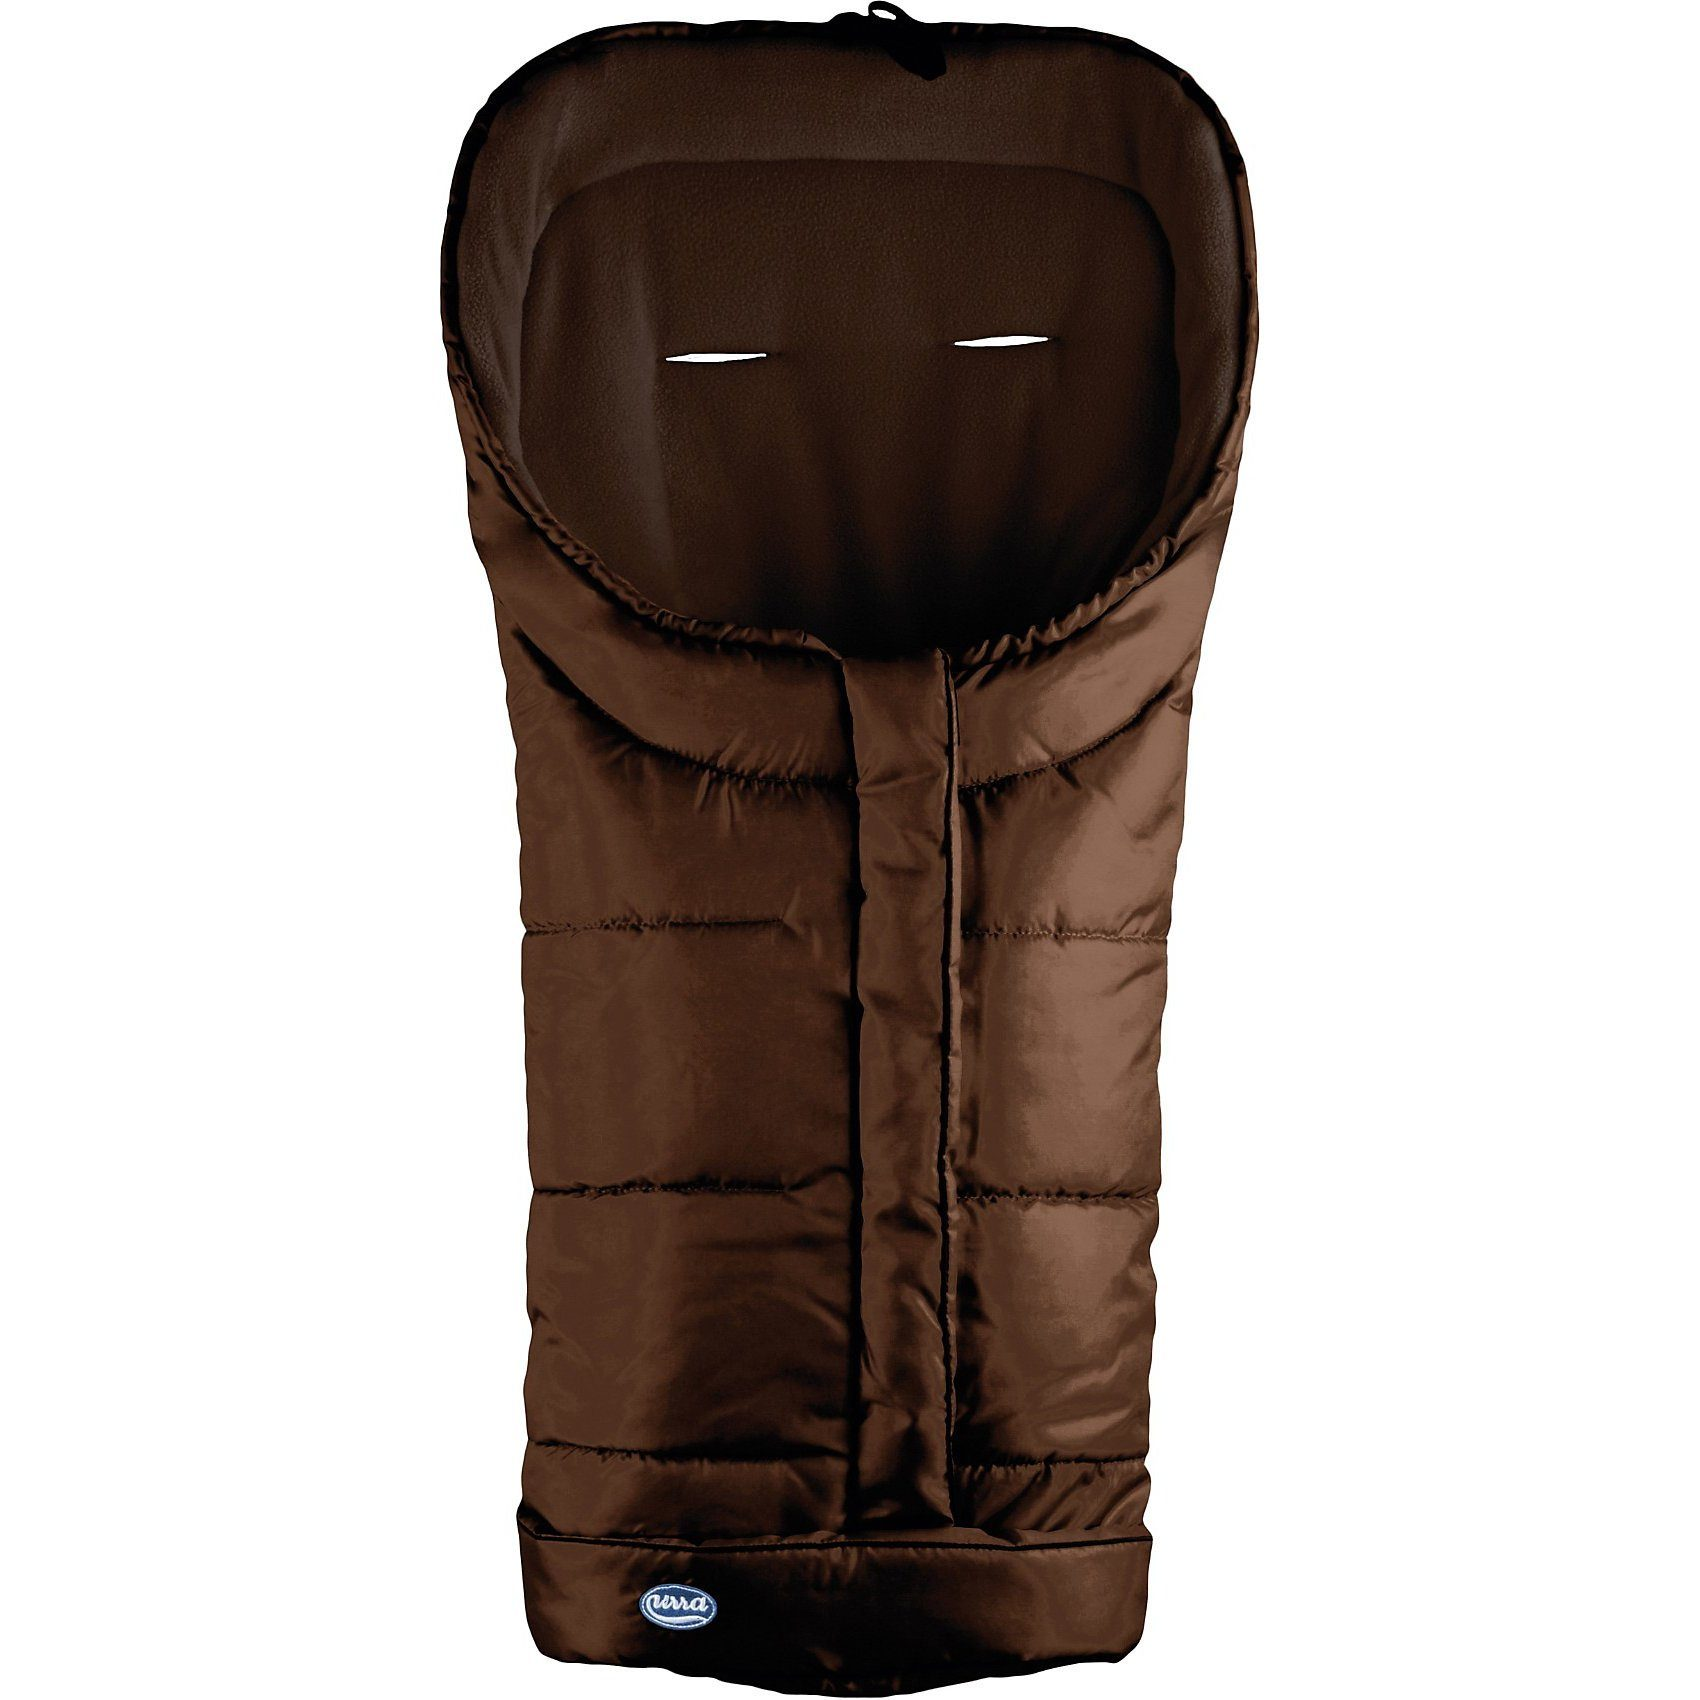 Urra Techno-Fleece Fußsack, mocca